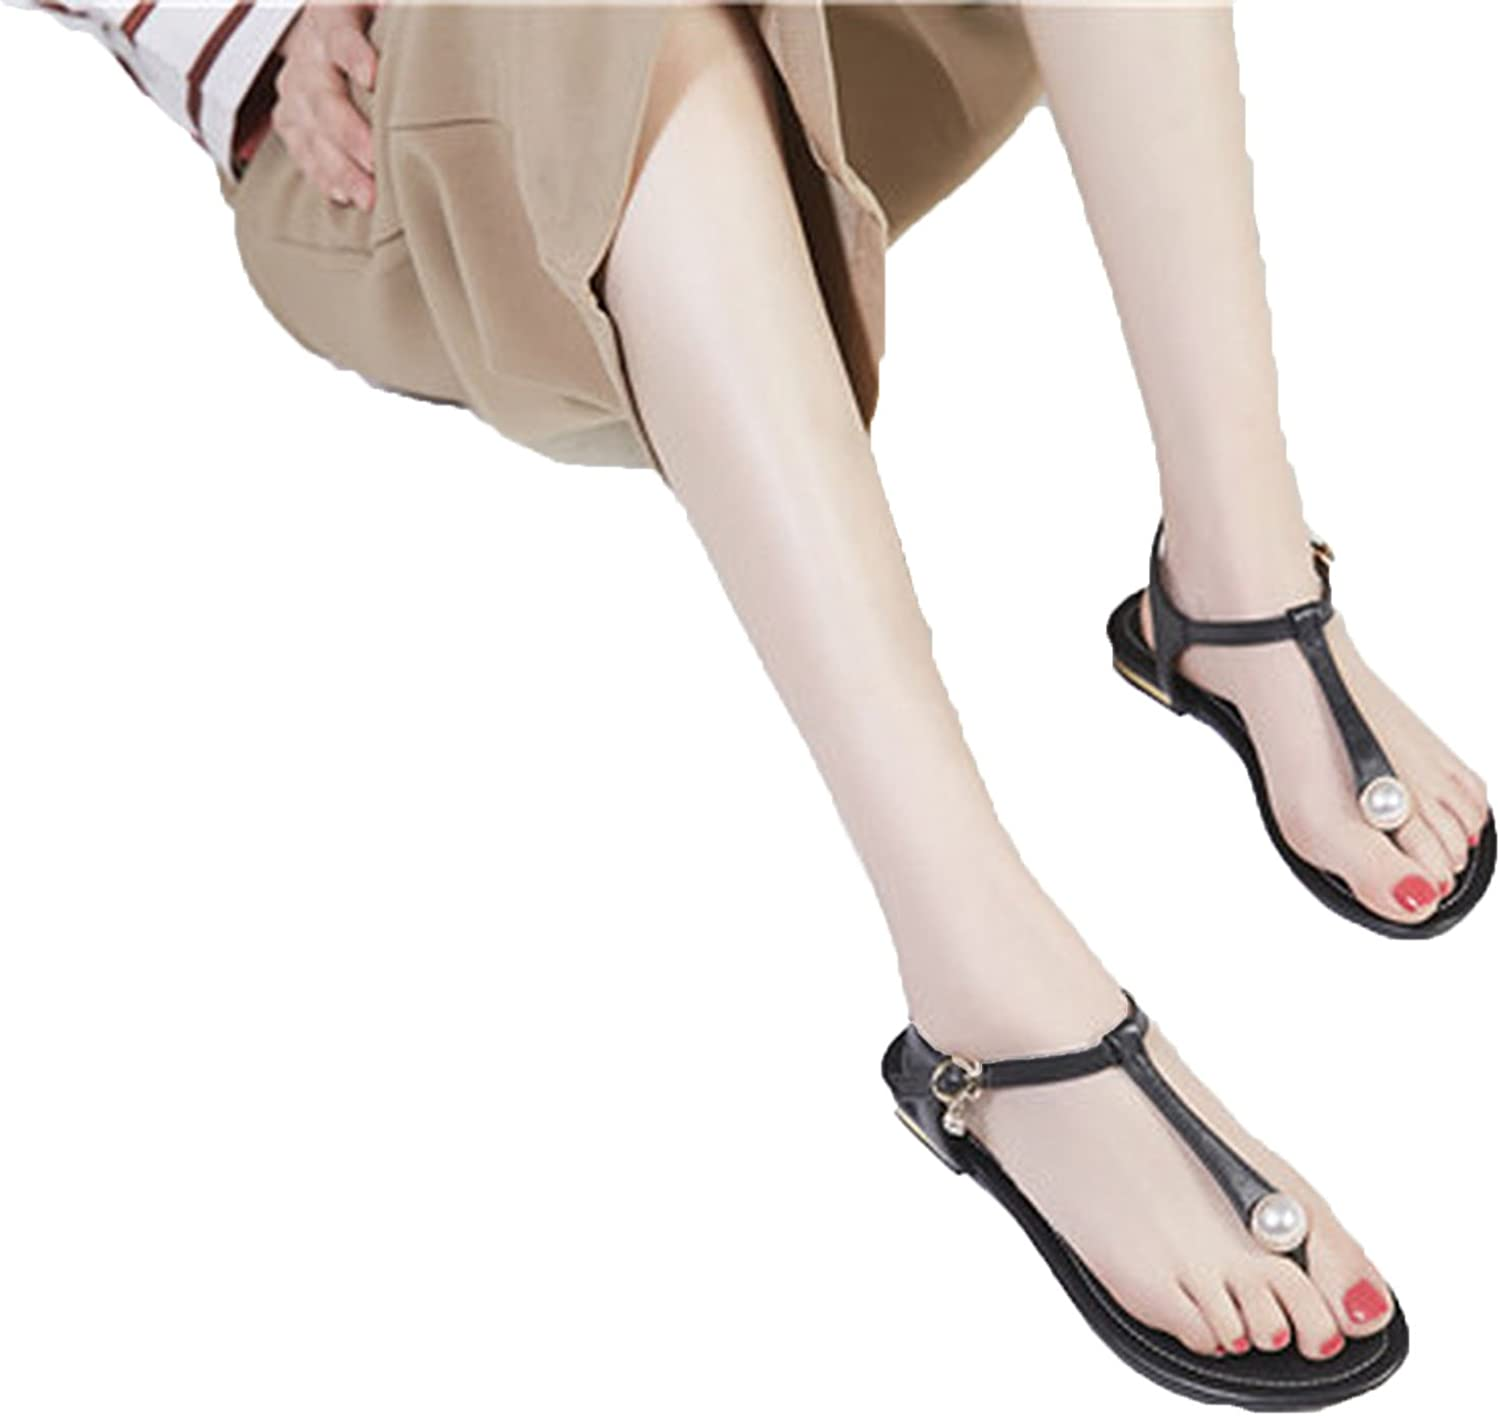 Running-sun Women Summer Sandals T-Strap Buckle Strap Flip Flops Flats shoes with Pearl Ladies shoes Plus Size